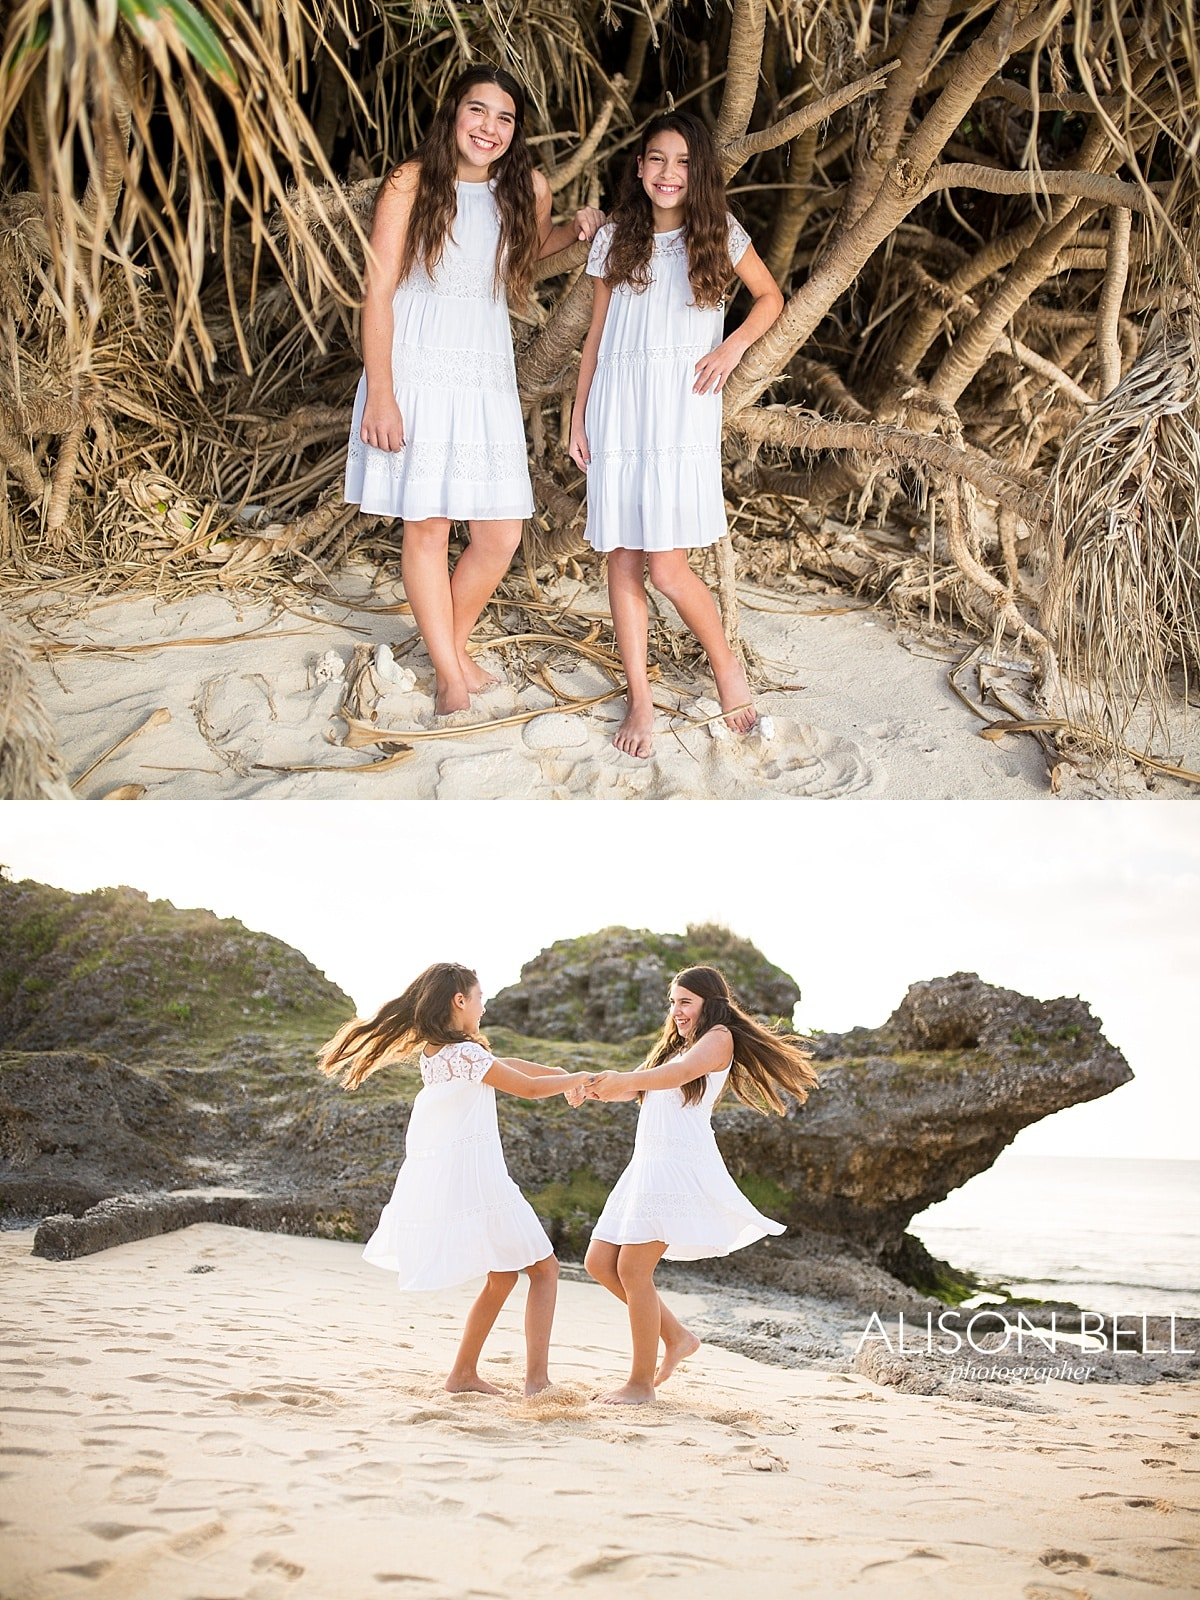 beach, yomitan, sisters, tween, teen, girls, family photographer, okinawa japan, alison bell, photographer